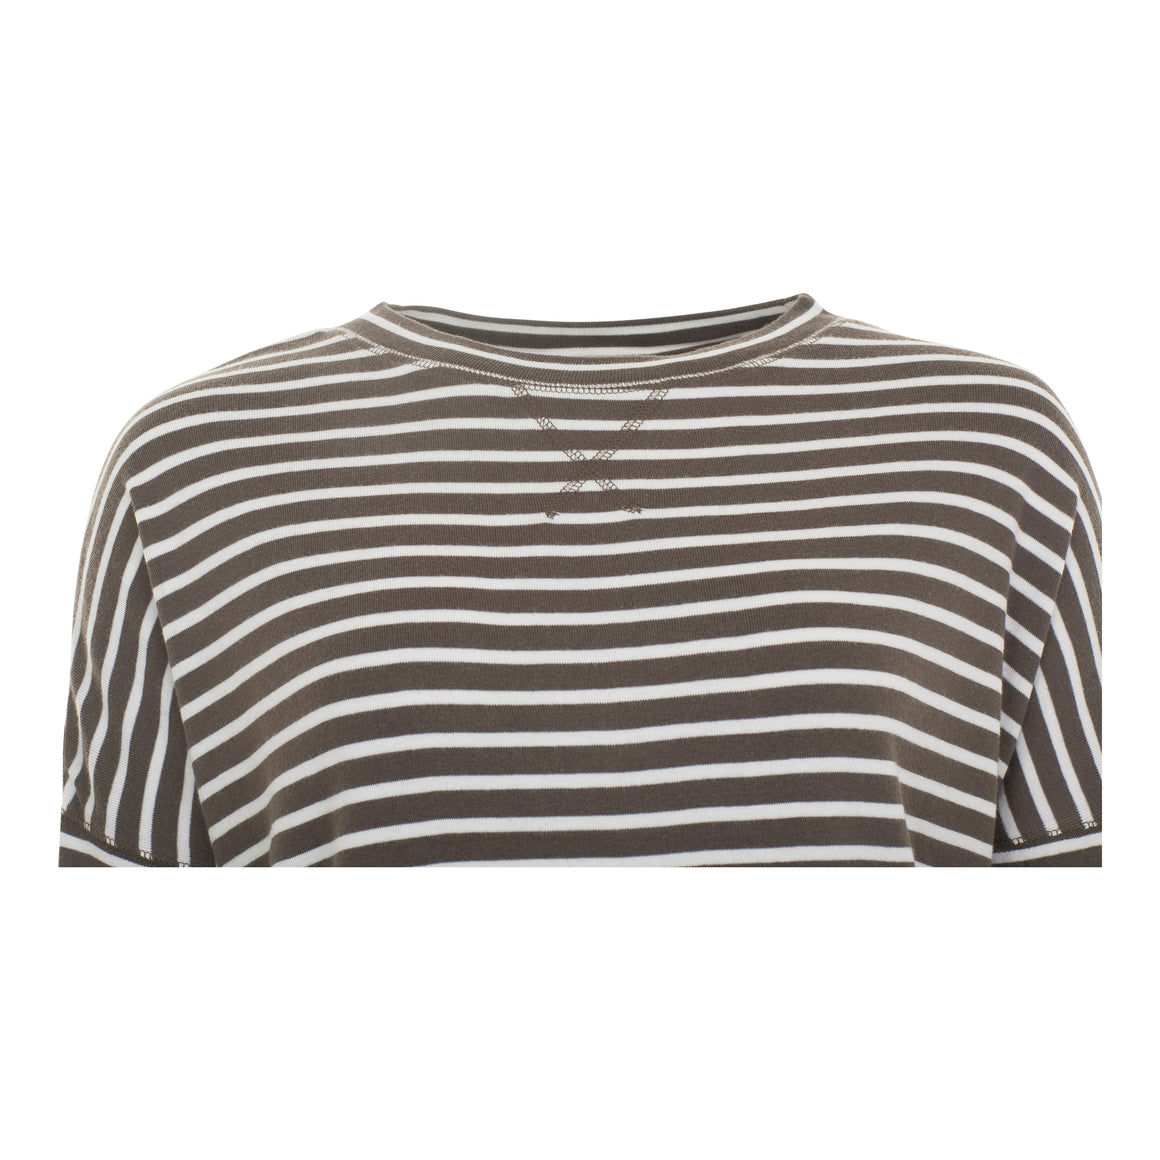 NYC Stripe Long Sleeve Top for Women in Army Khaki